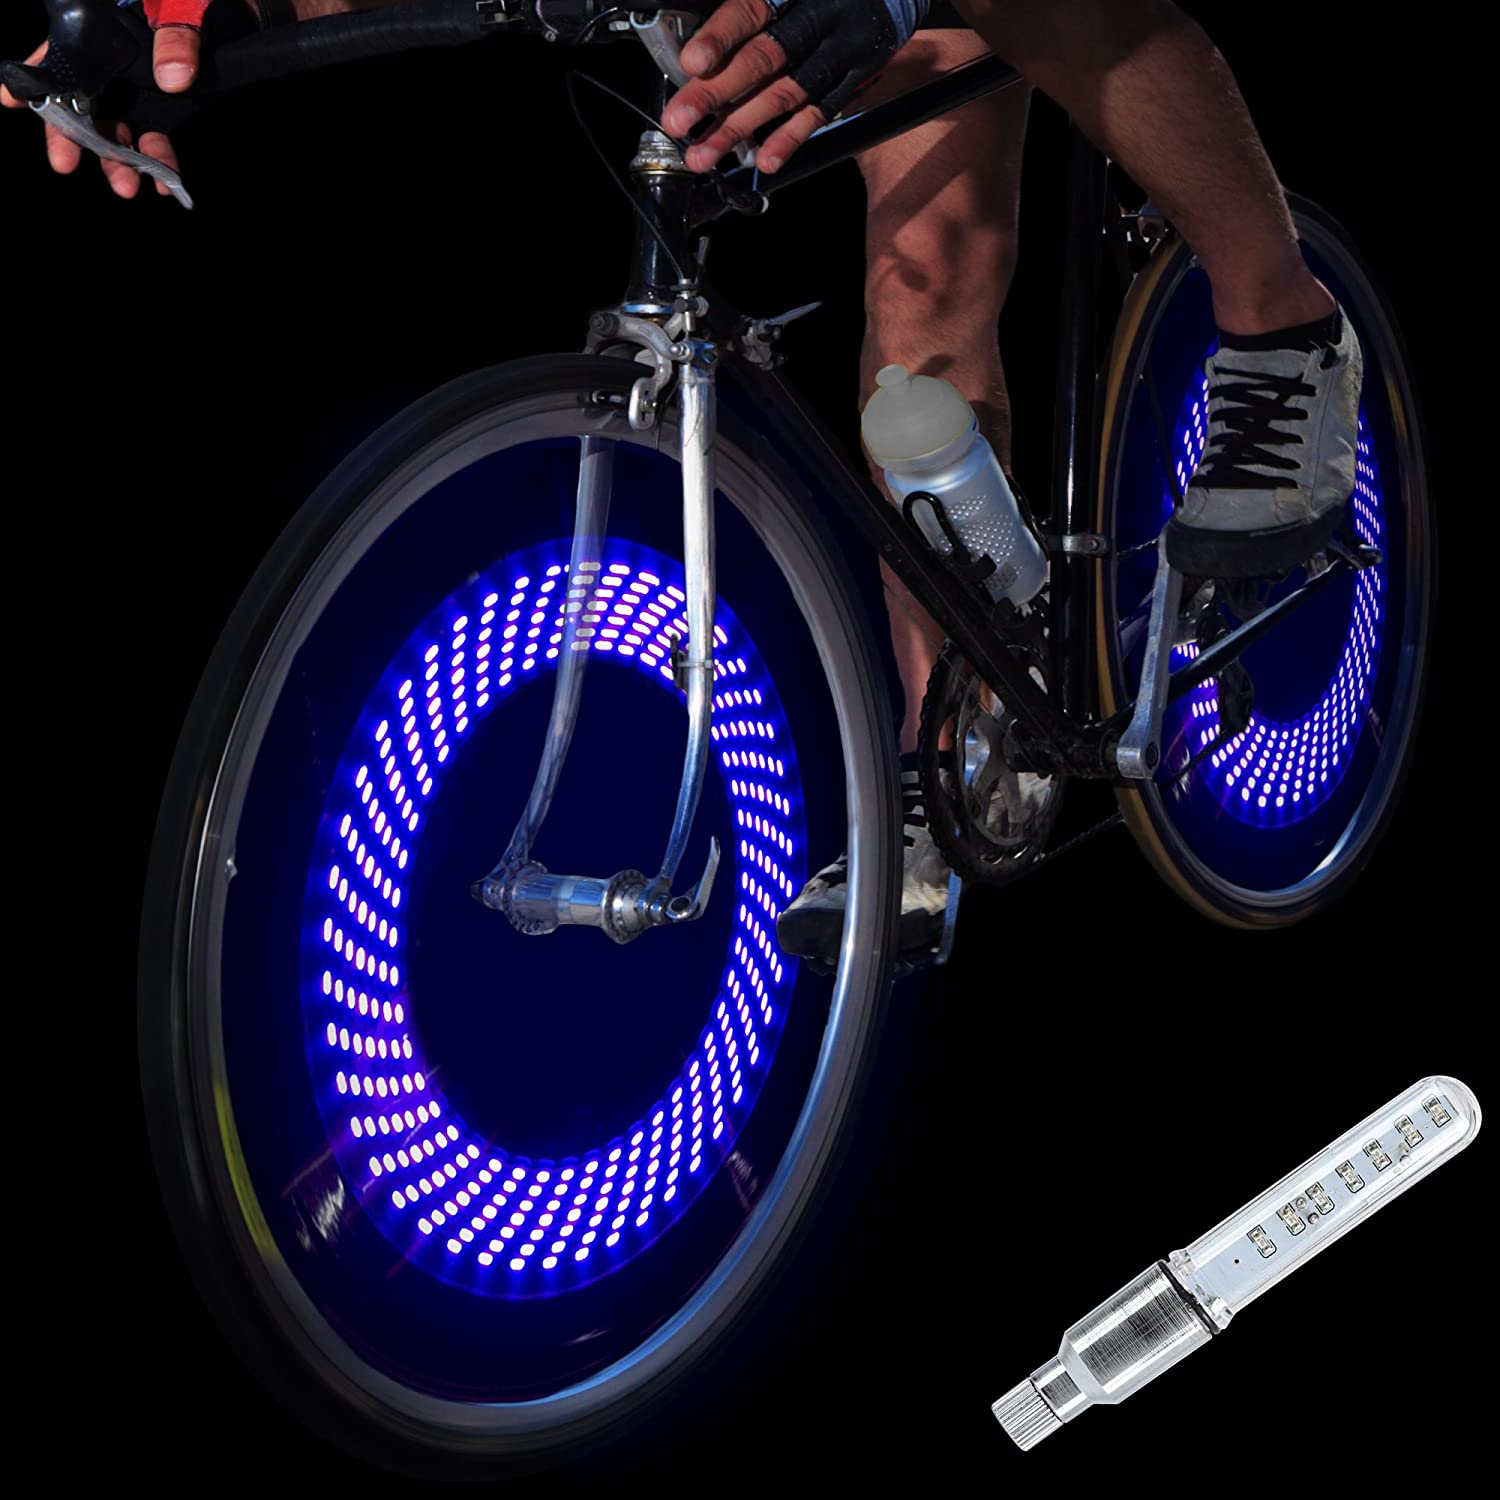 Amazon.com : DAWAY A08 Bike Tire Valve Stem Light - LED Waterproof ...